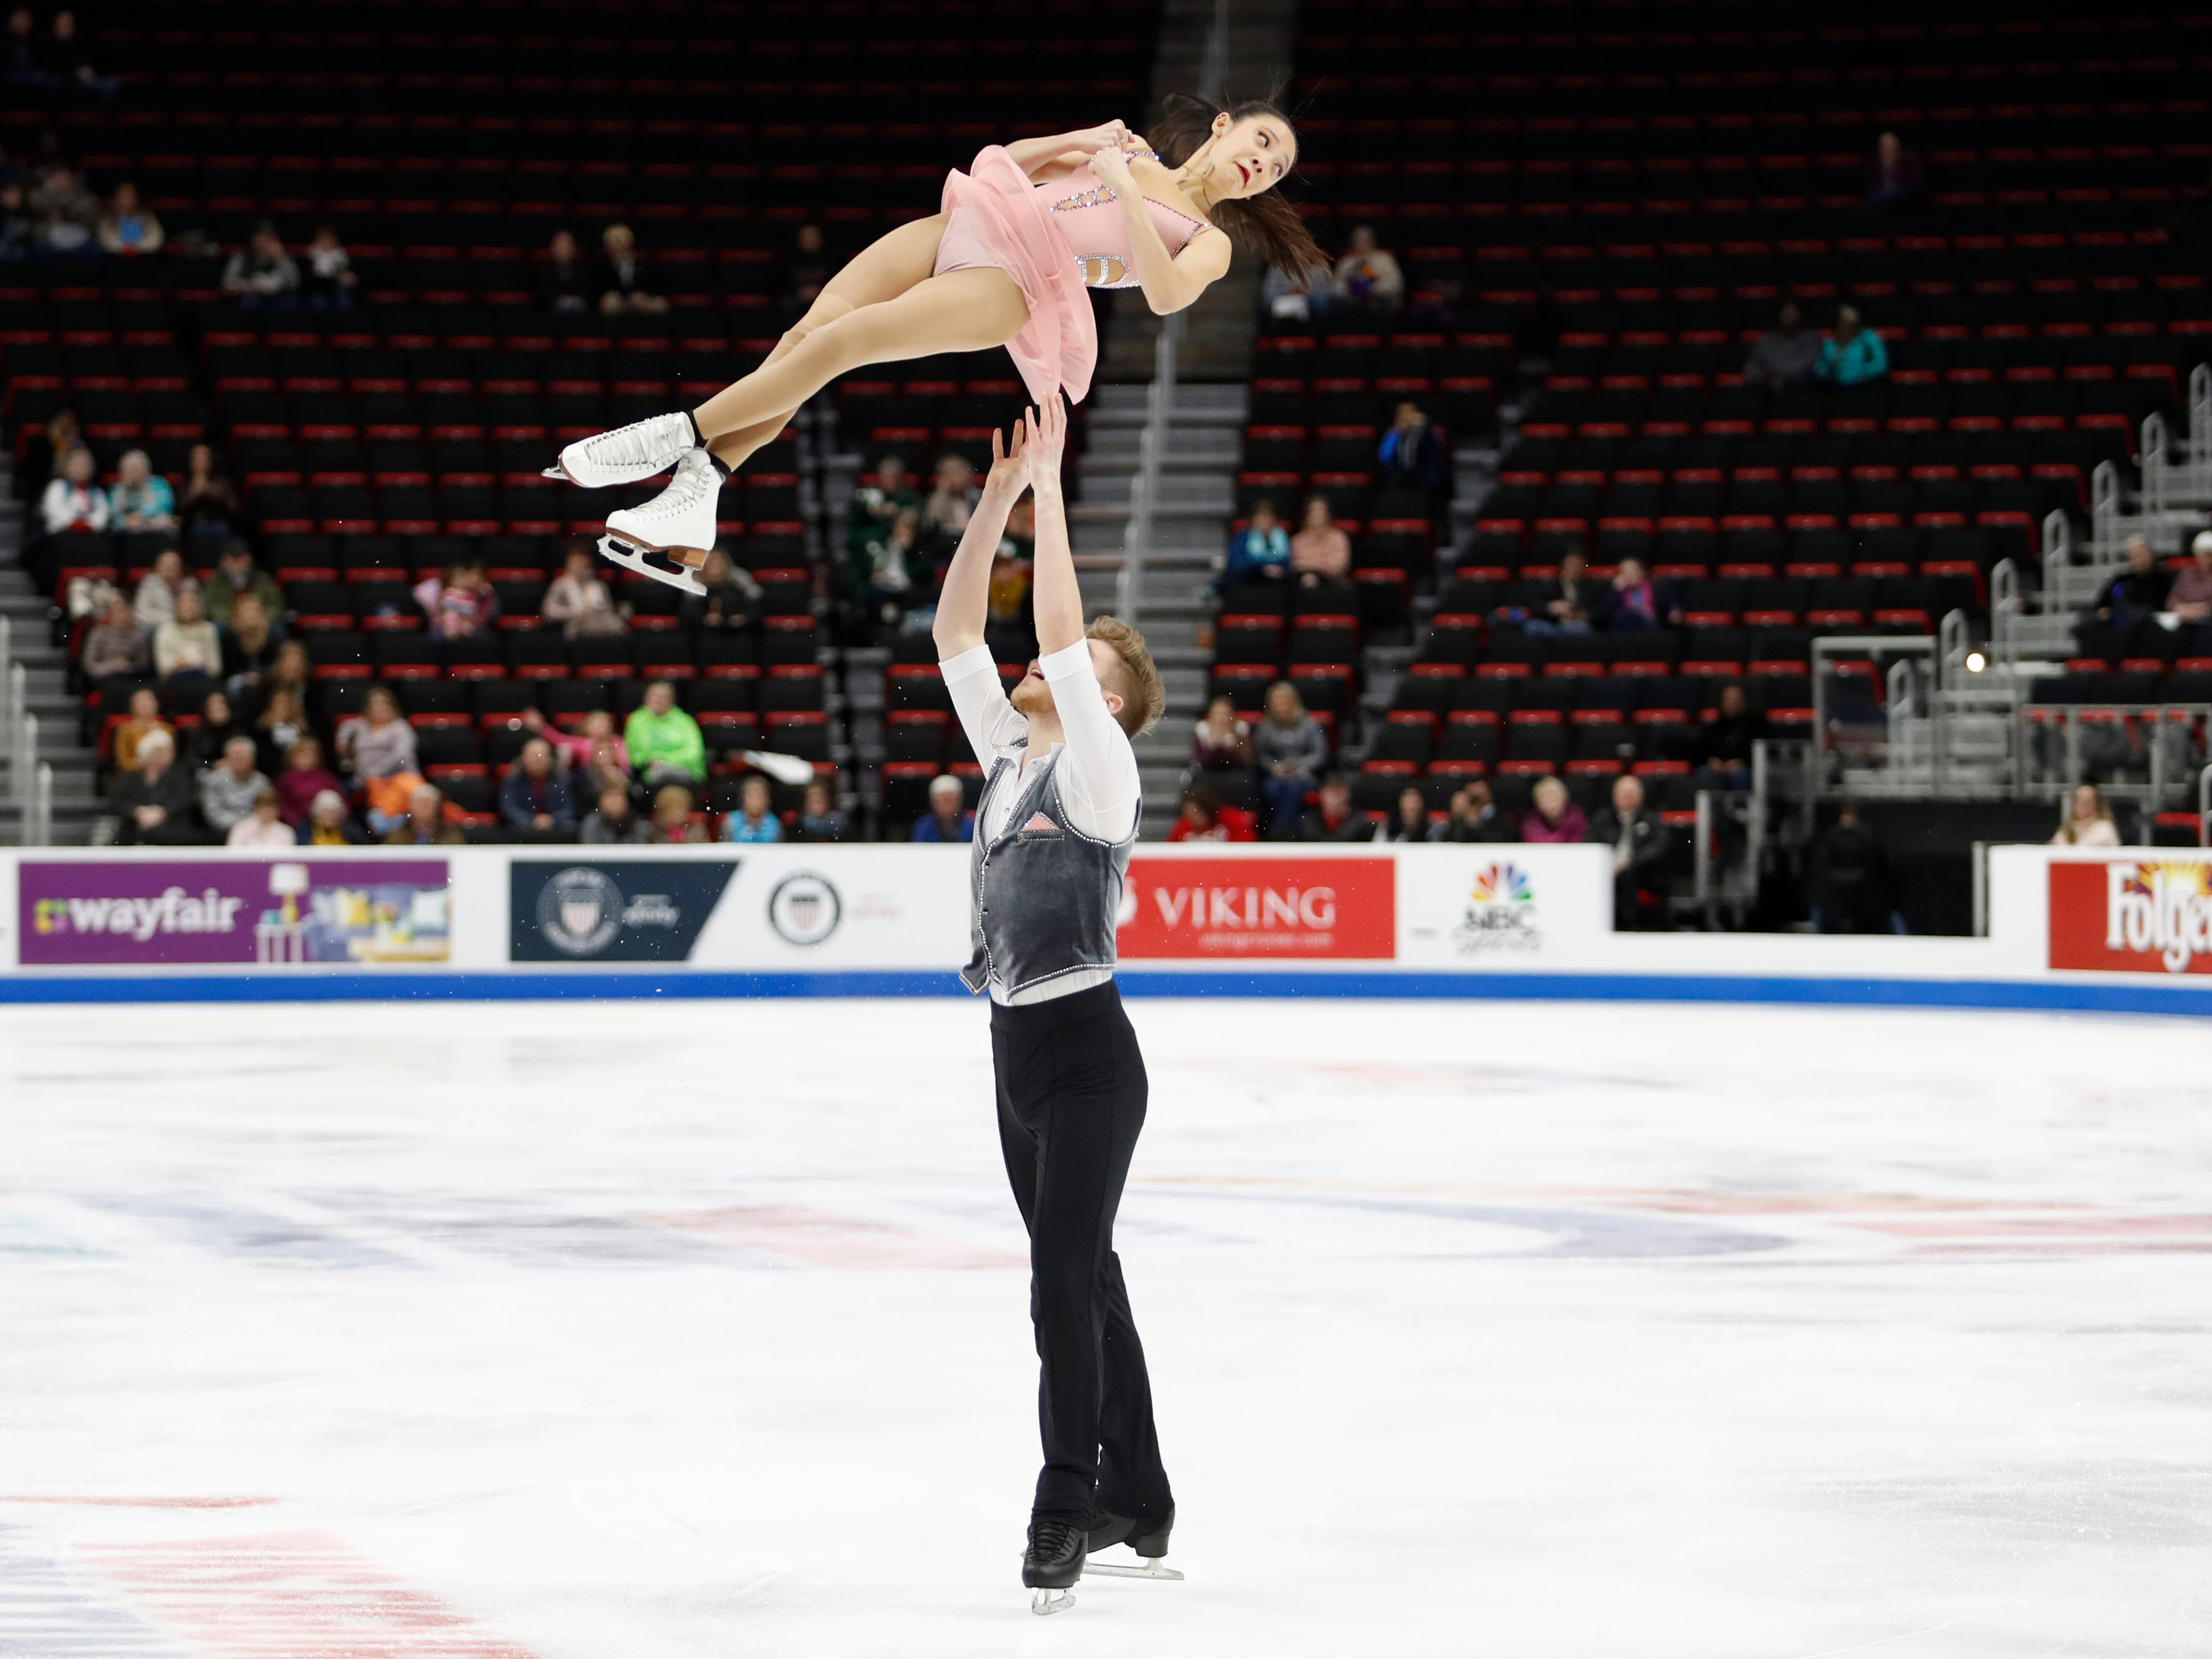 Chelsea Liu and Ian Meyh perform in the pairs short program.